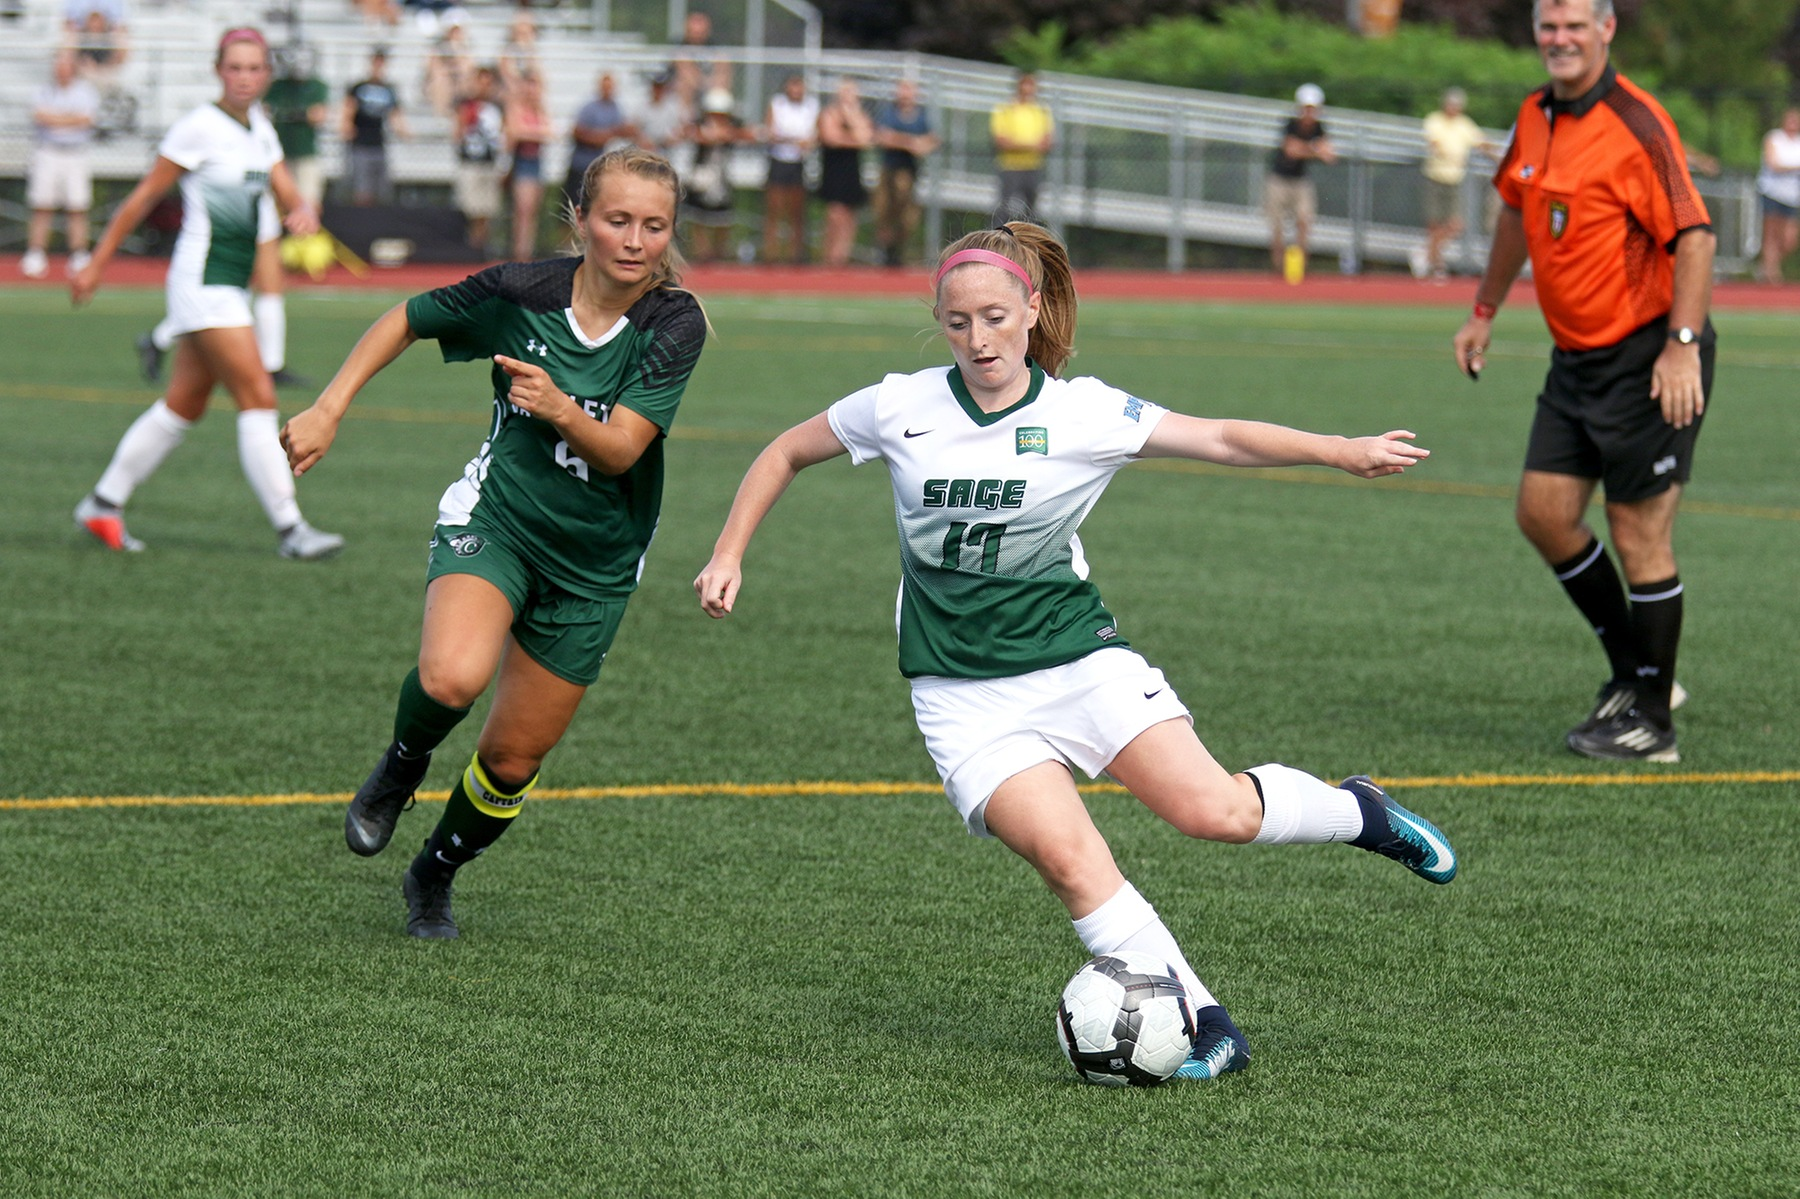 Sage women's soccer now 3-0 after 3-1 win at Bard